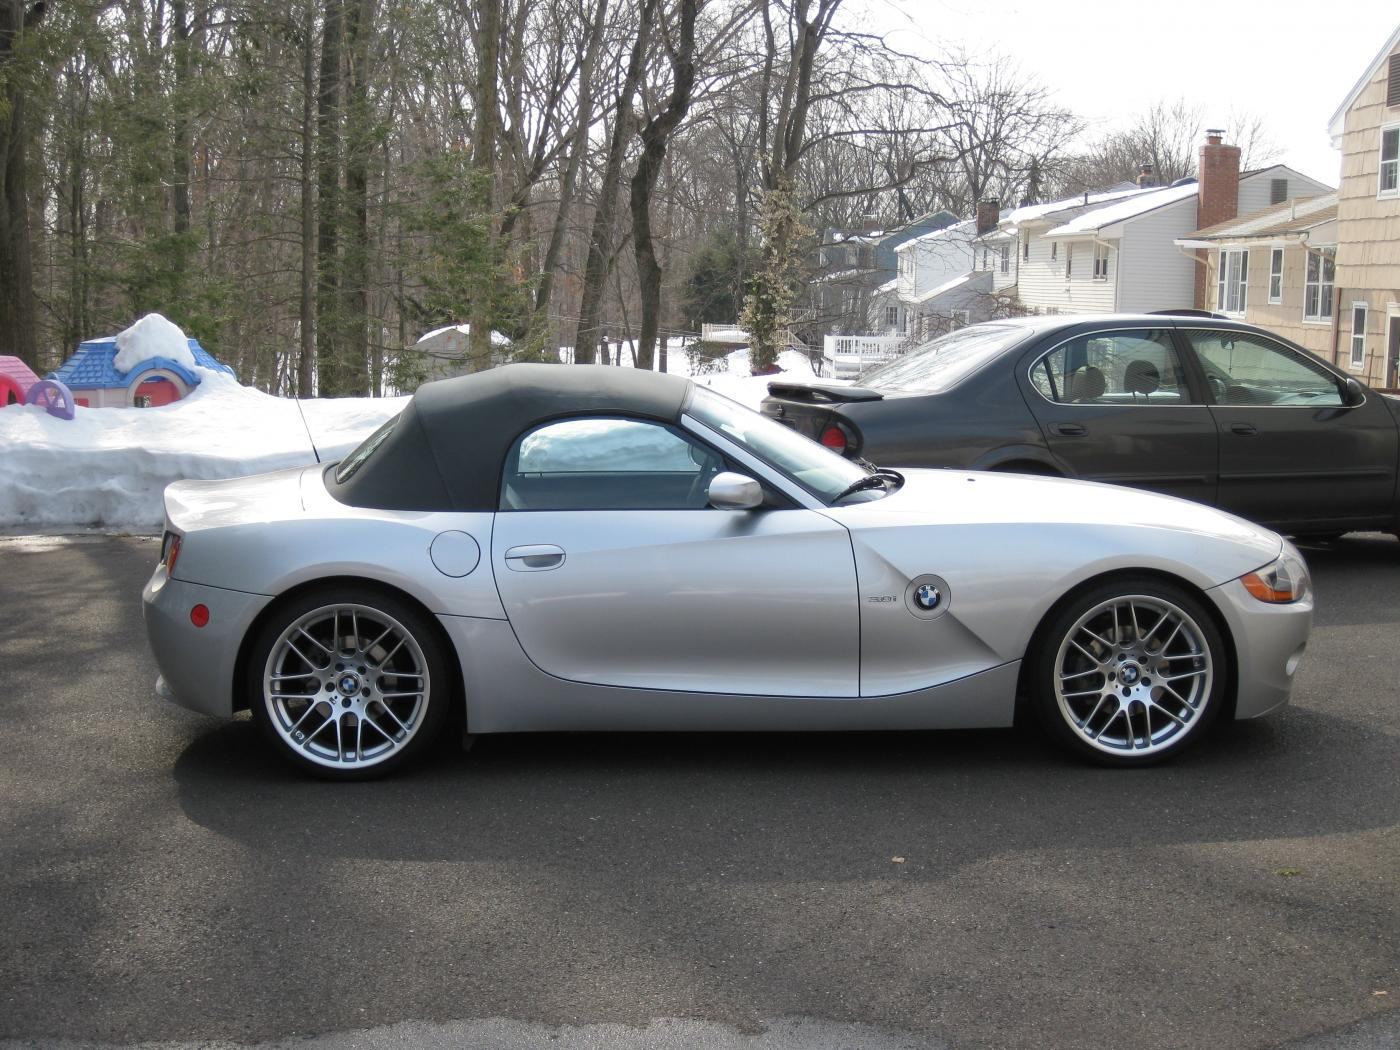 Bmw Z4 Custom Wheels Vmr Csl 19x8 5 Et 40 Tire Size 235